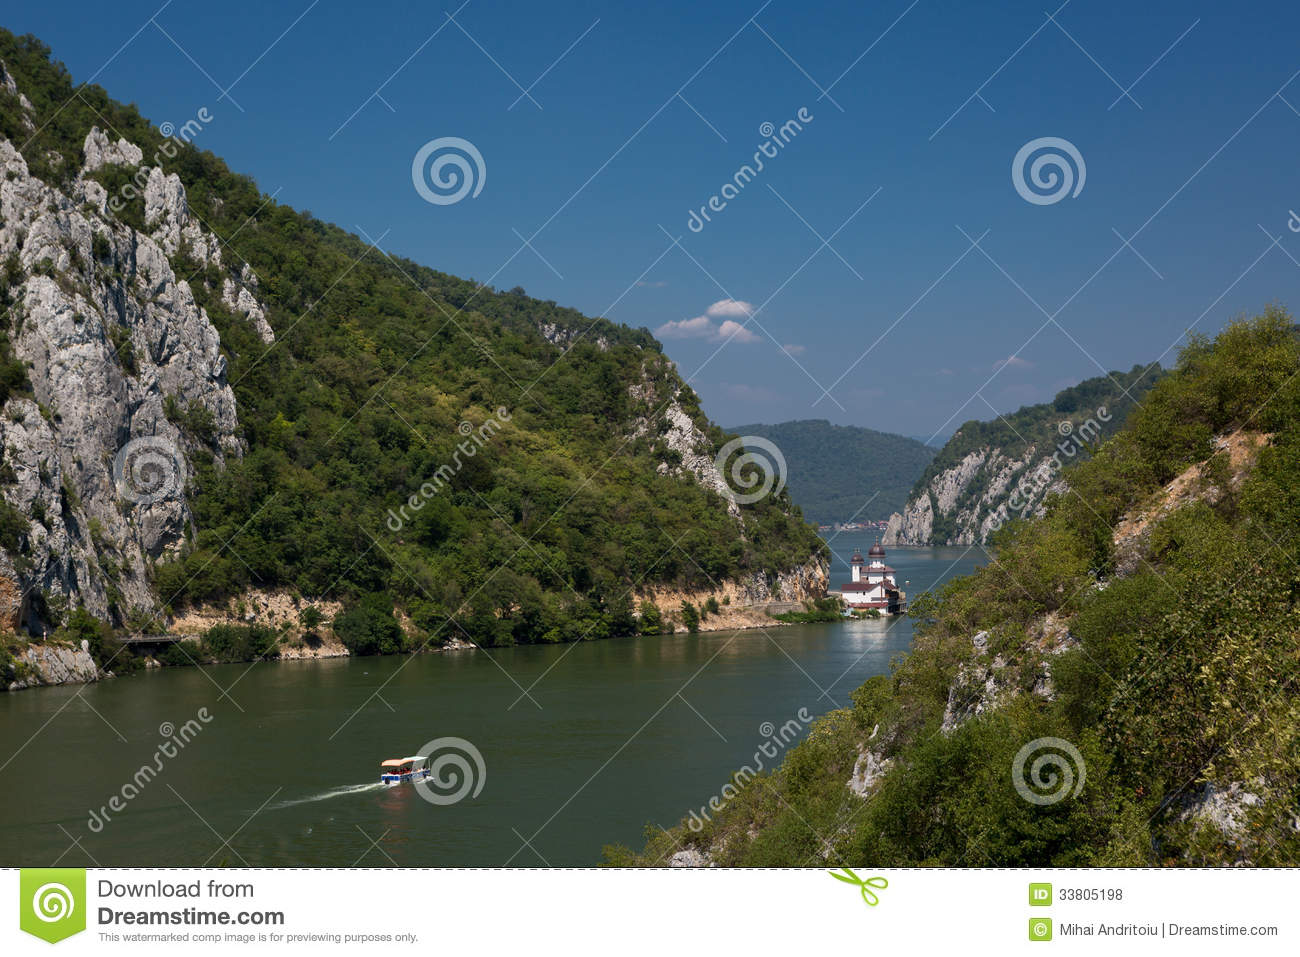 Scenic landscape of the Danube valley canyon